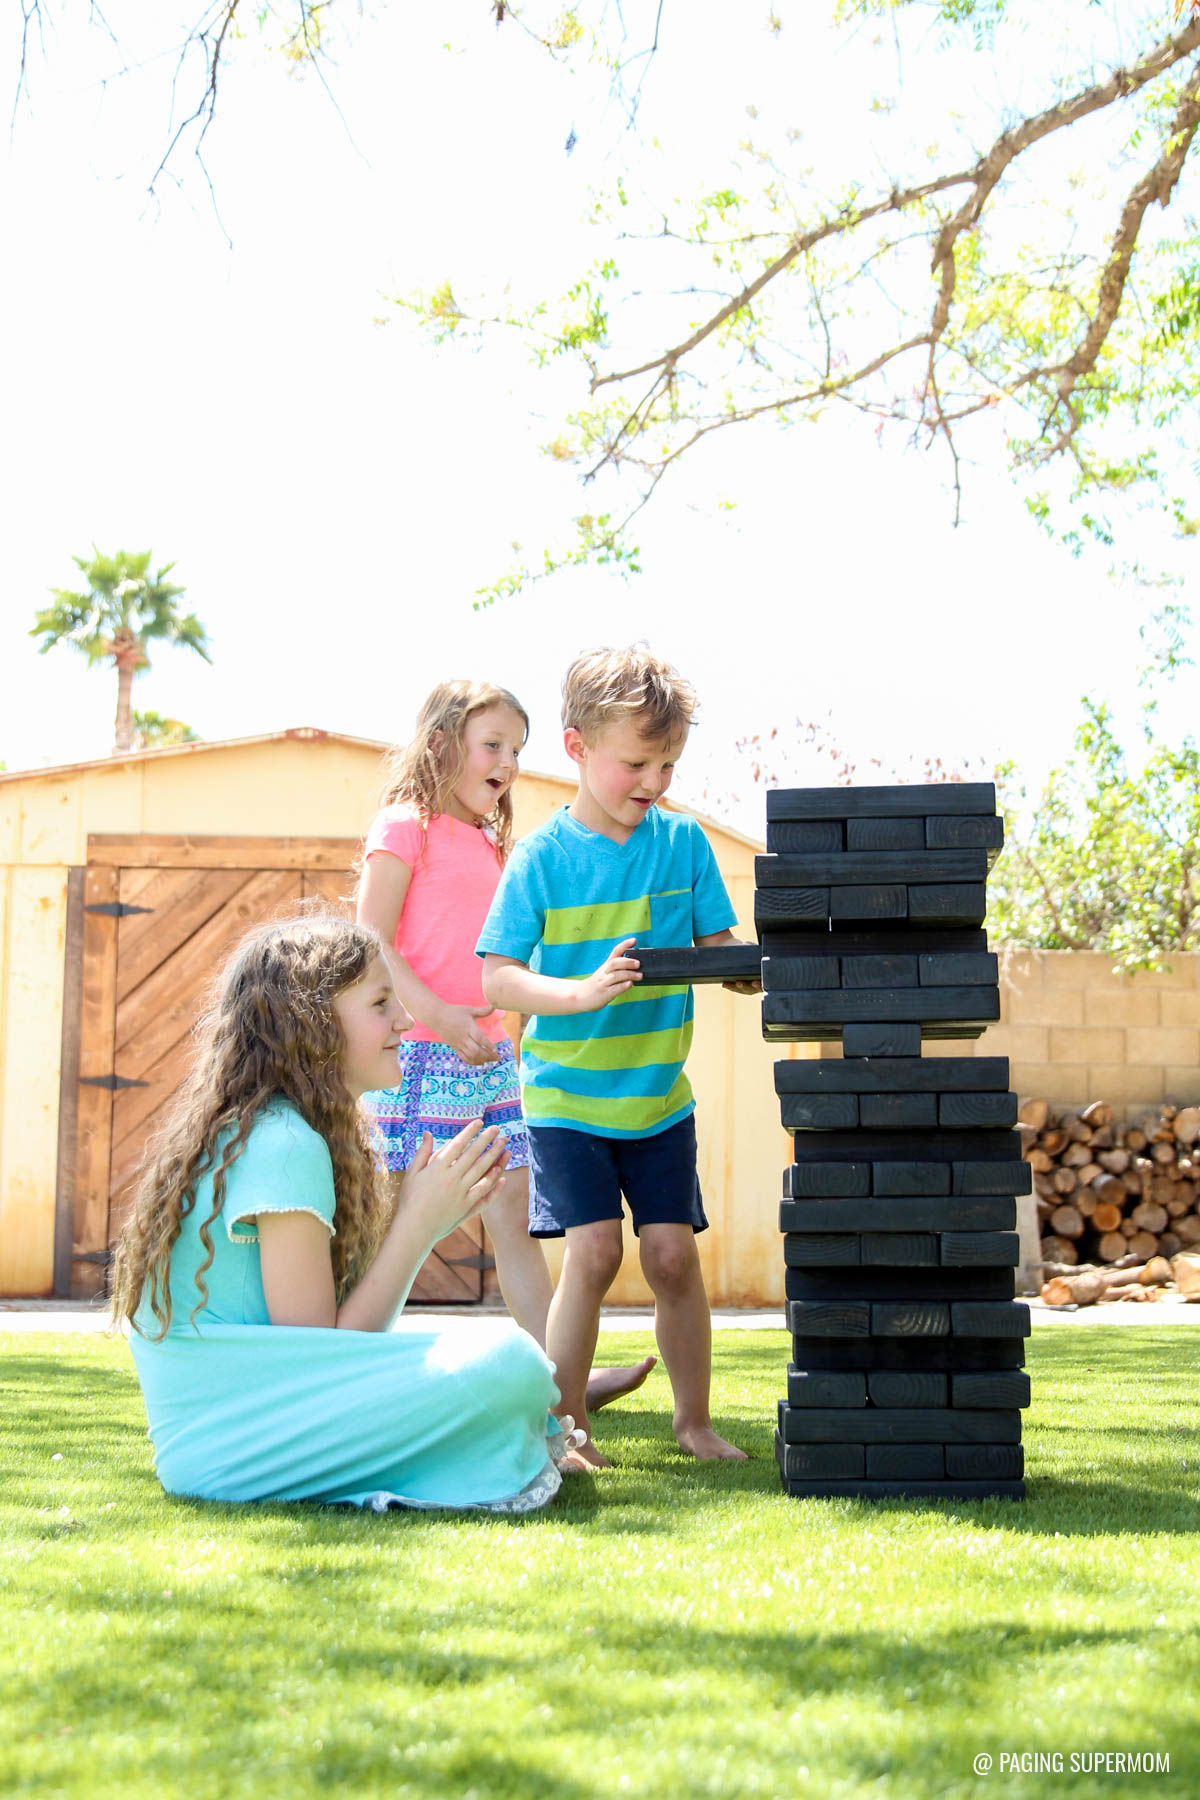 Giant Jenga Game - DIY Backyard Games plans from @HomeDepot via @PagingSupermom